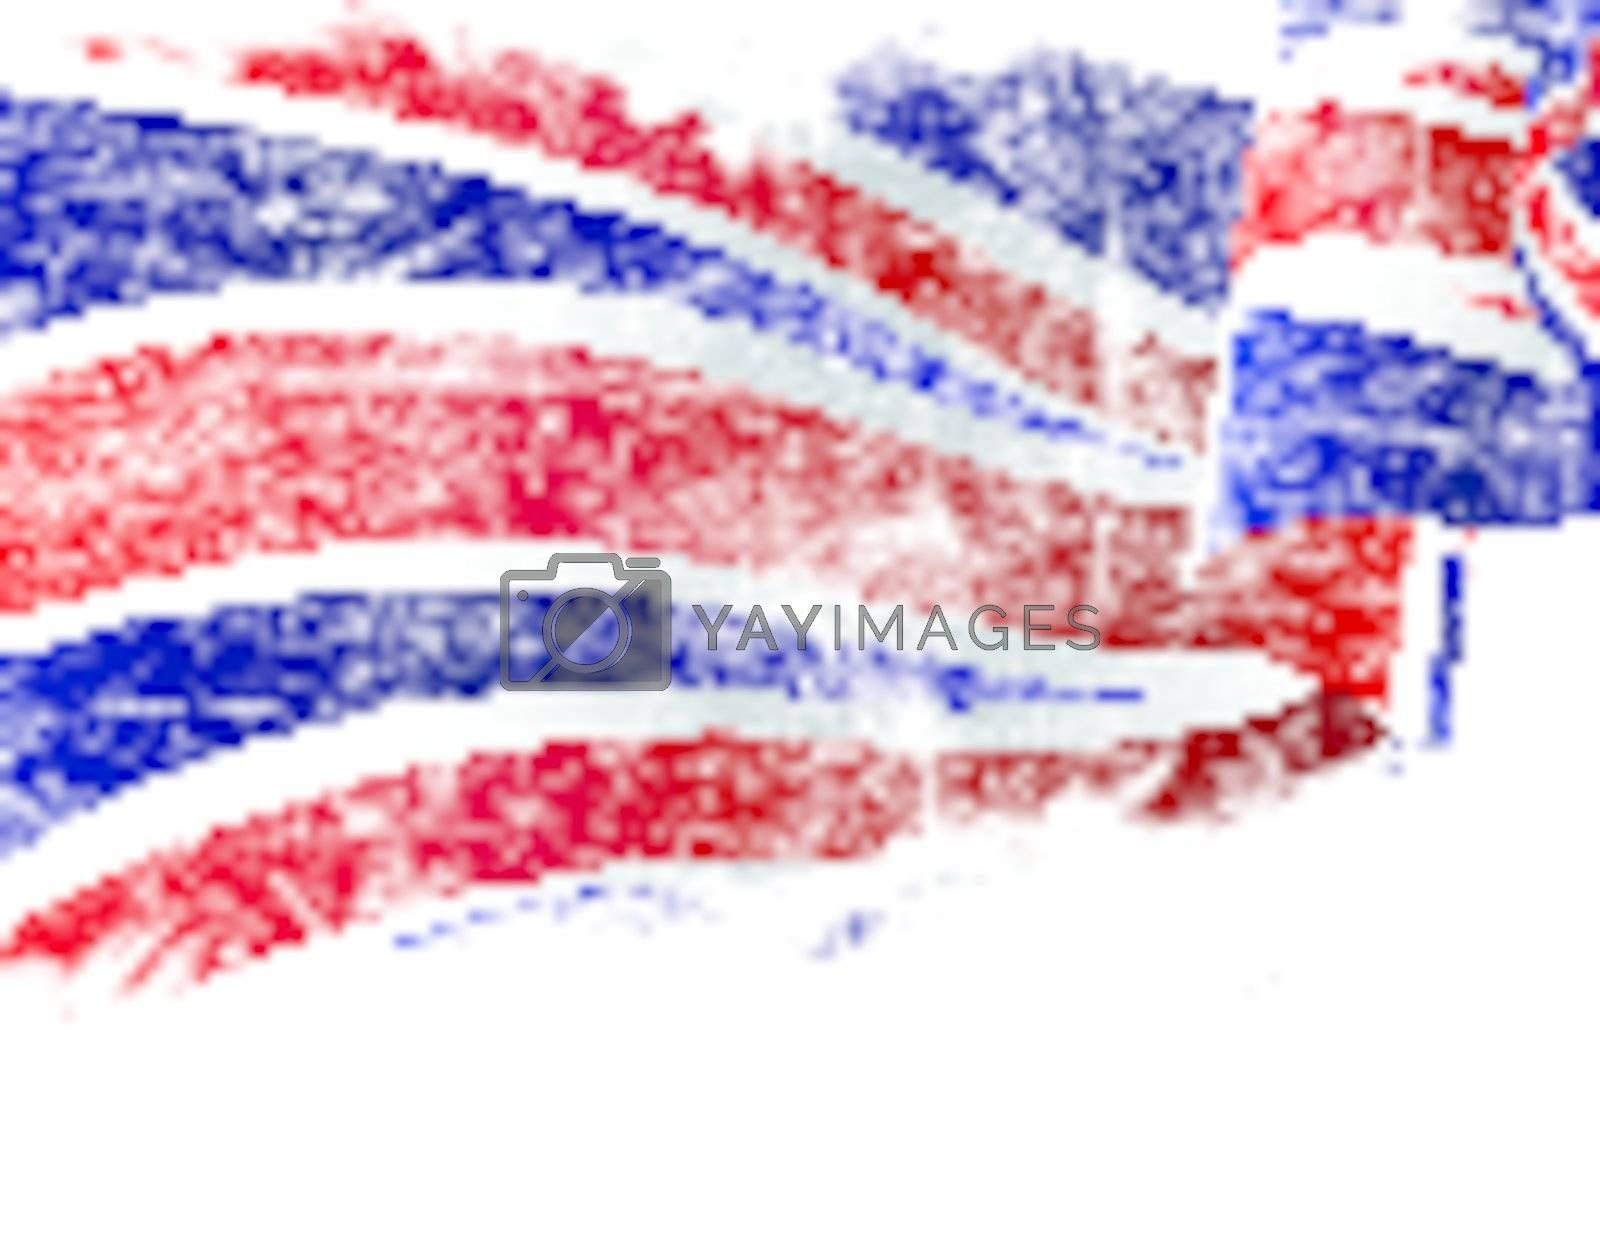 Isolated grunge United Kingdom flag with copy space